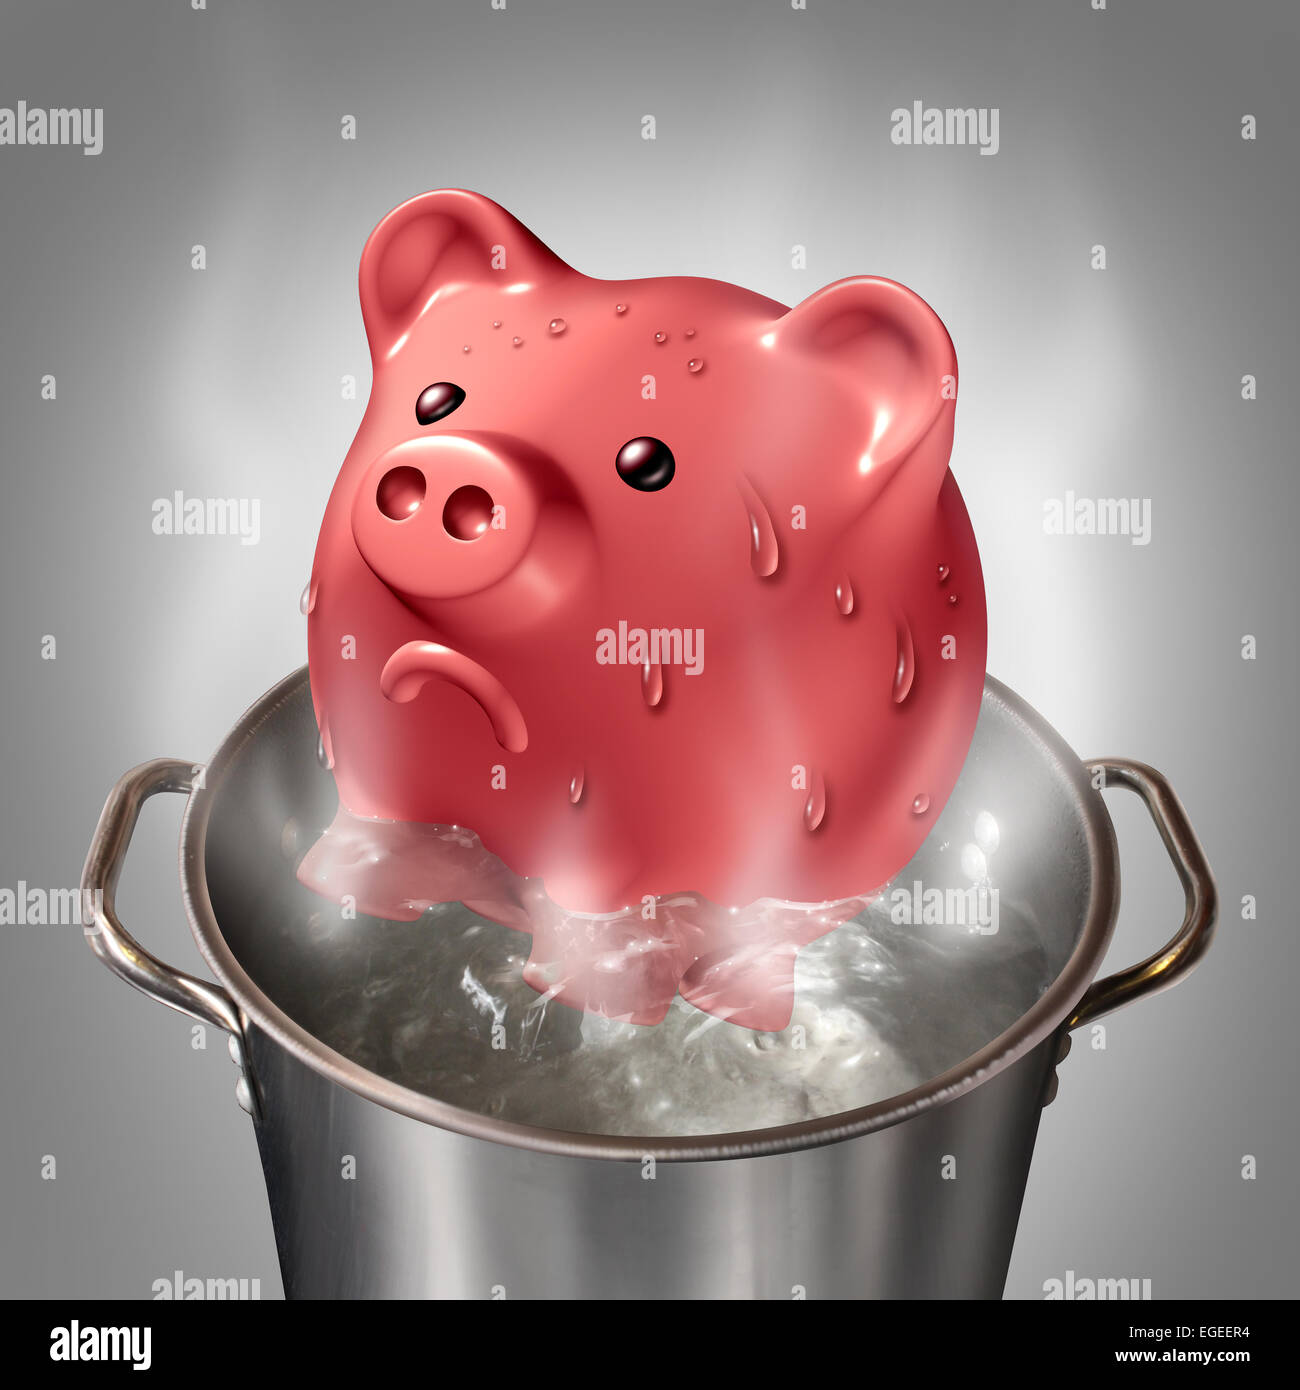 Financial heat business concept as a piggybank in a pot of hot boiling water as a symbol for money problems and - Stock Image